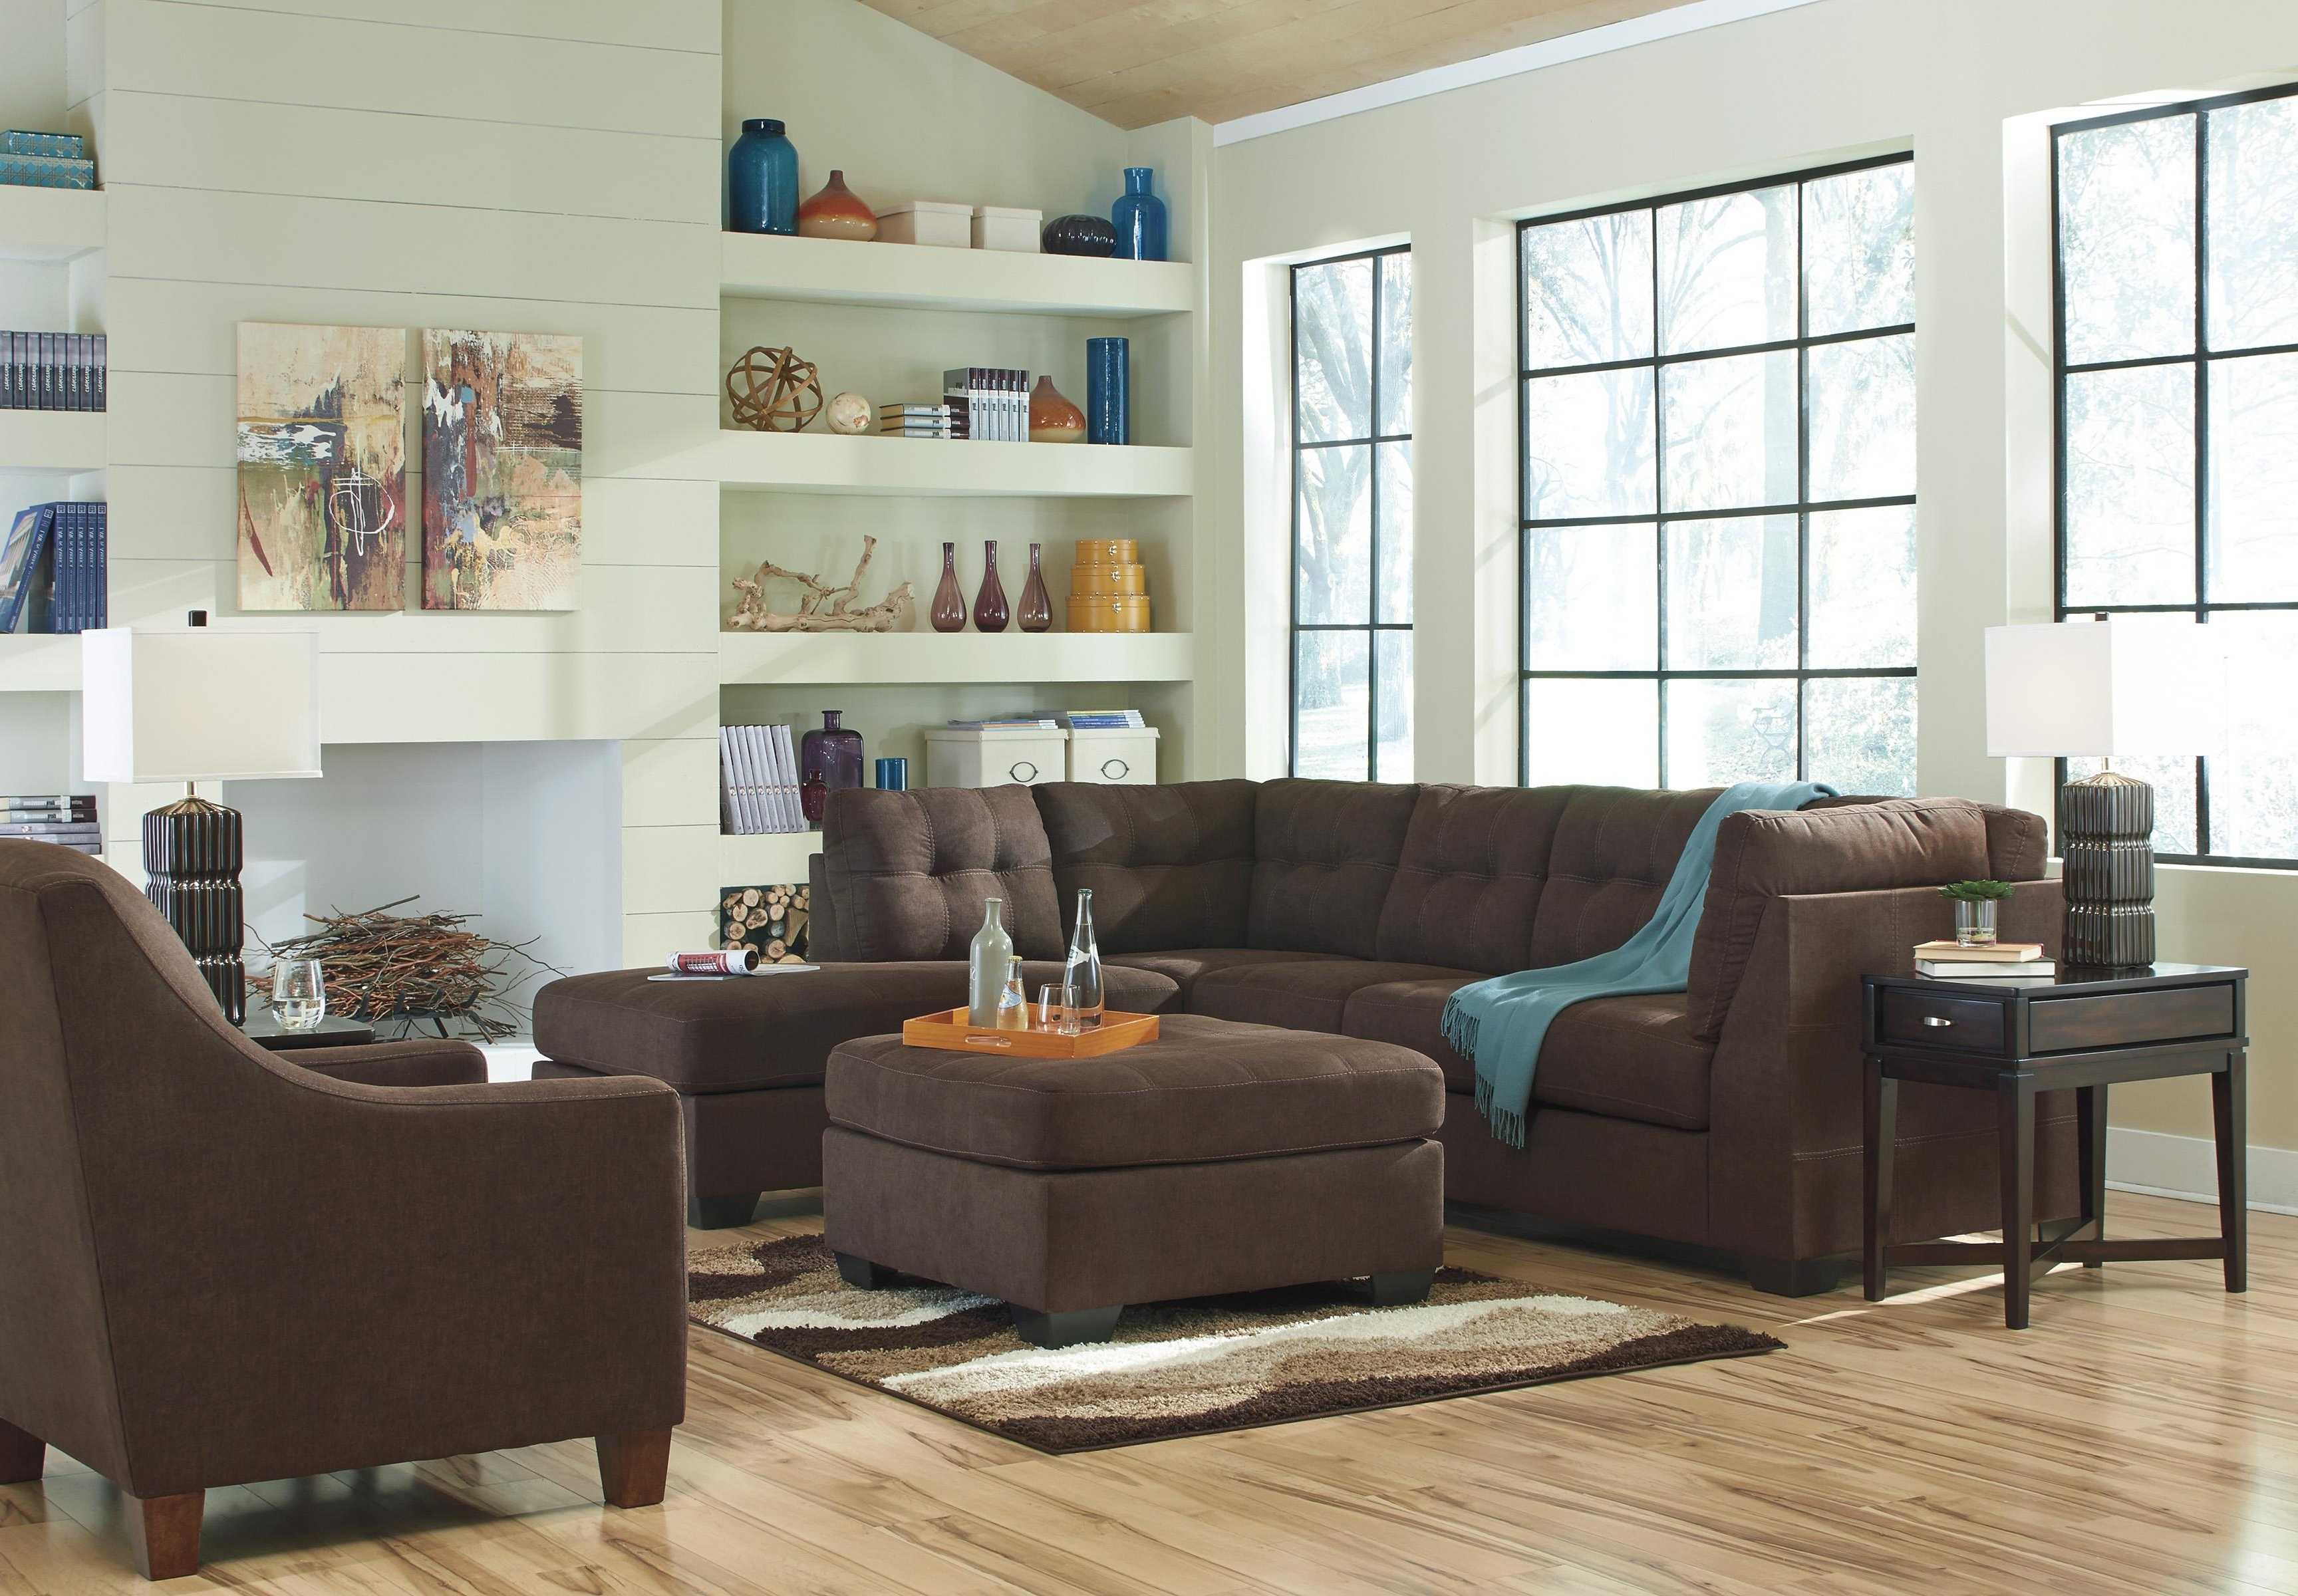 Preferred Sectional Sofas That Come In Pieces In 2 Piece Sectional With Right Chaisebenchcraft (View 8 of 20)